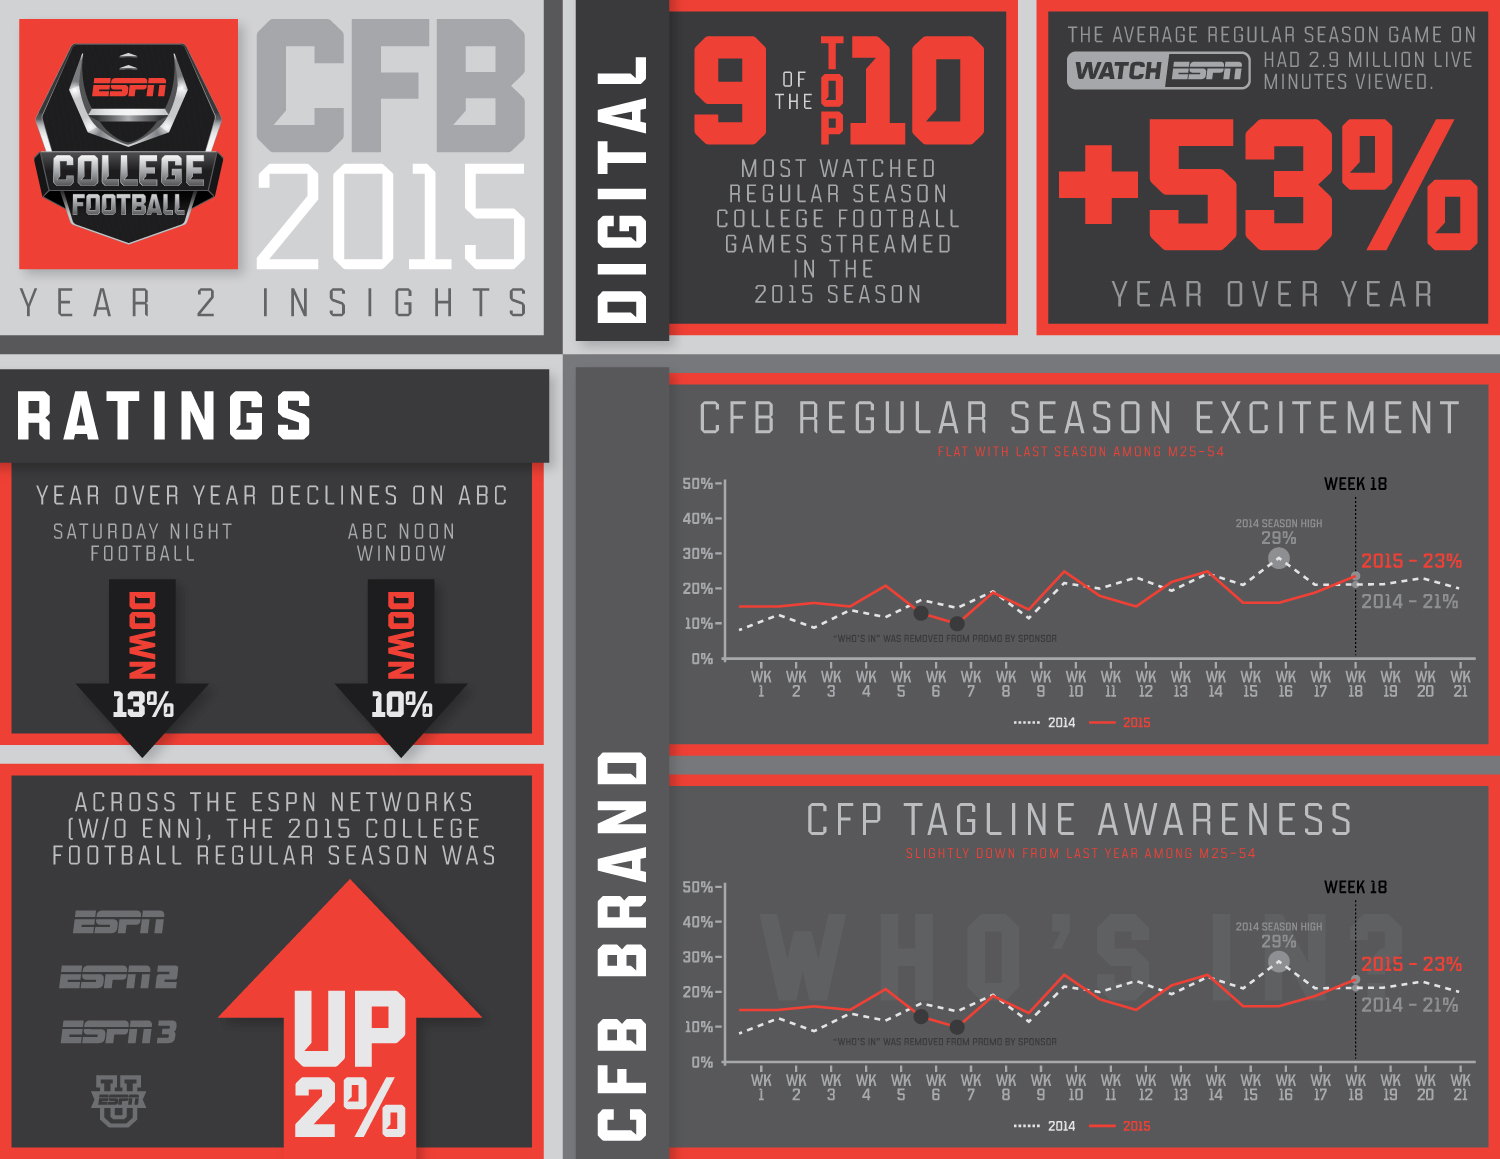 16023995OST_CFB-CFP_Year2Insights_Graphic_v07.jpg